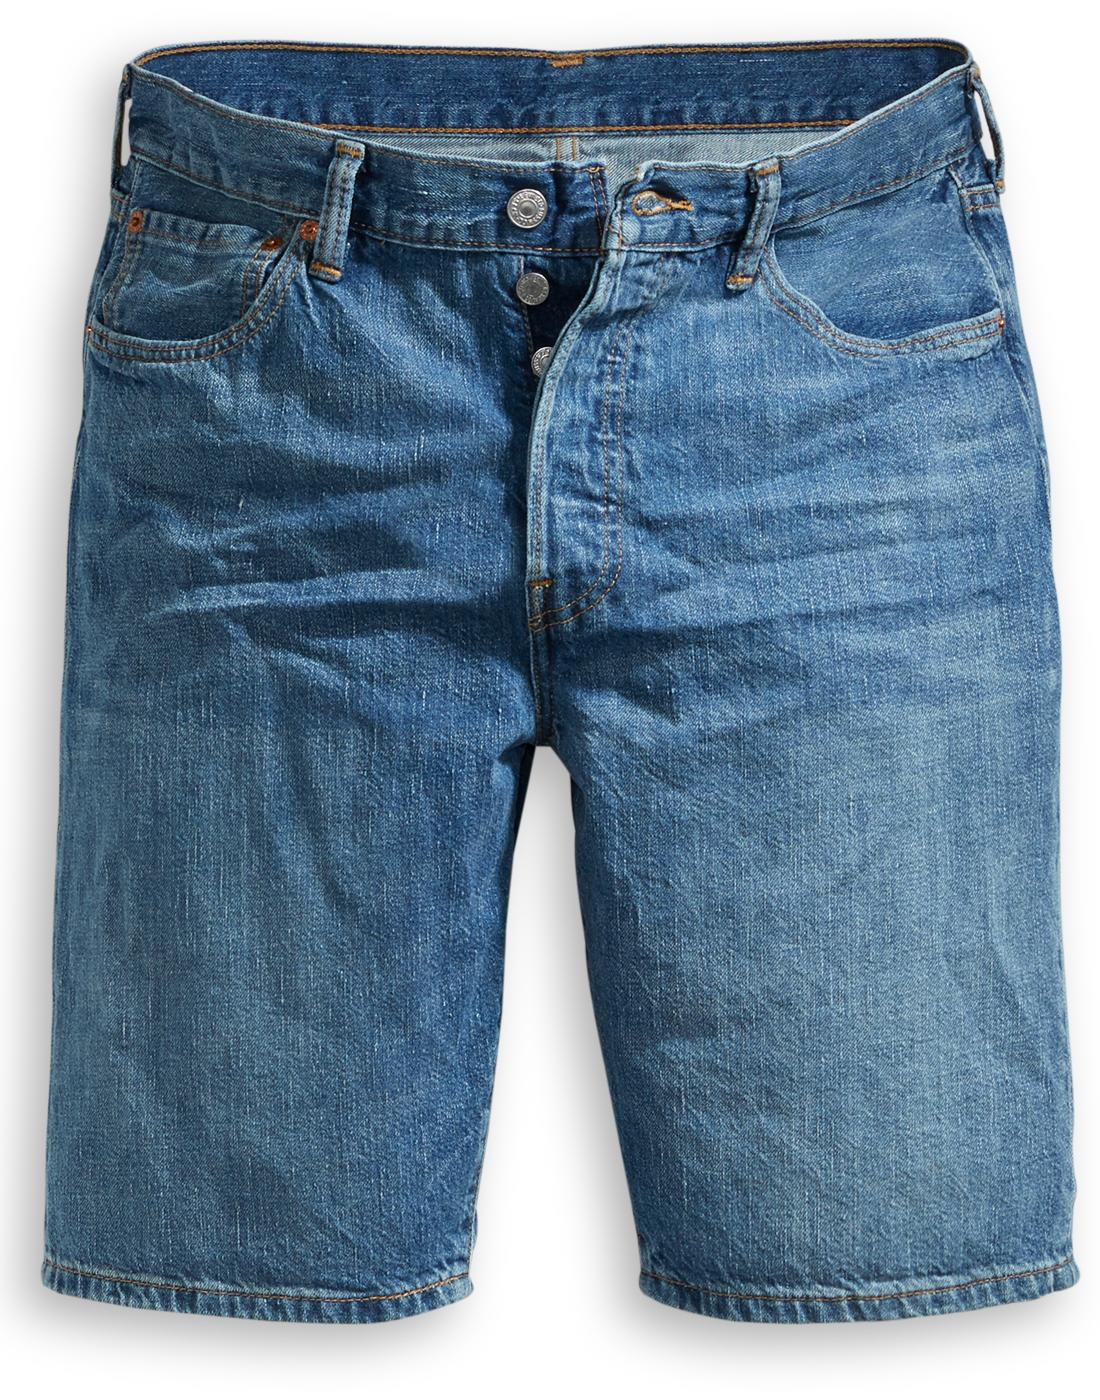 LEVI'S® 501 Men's Hemmed Denim Shorts LOVIN SOUND